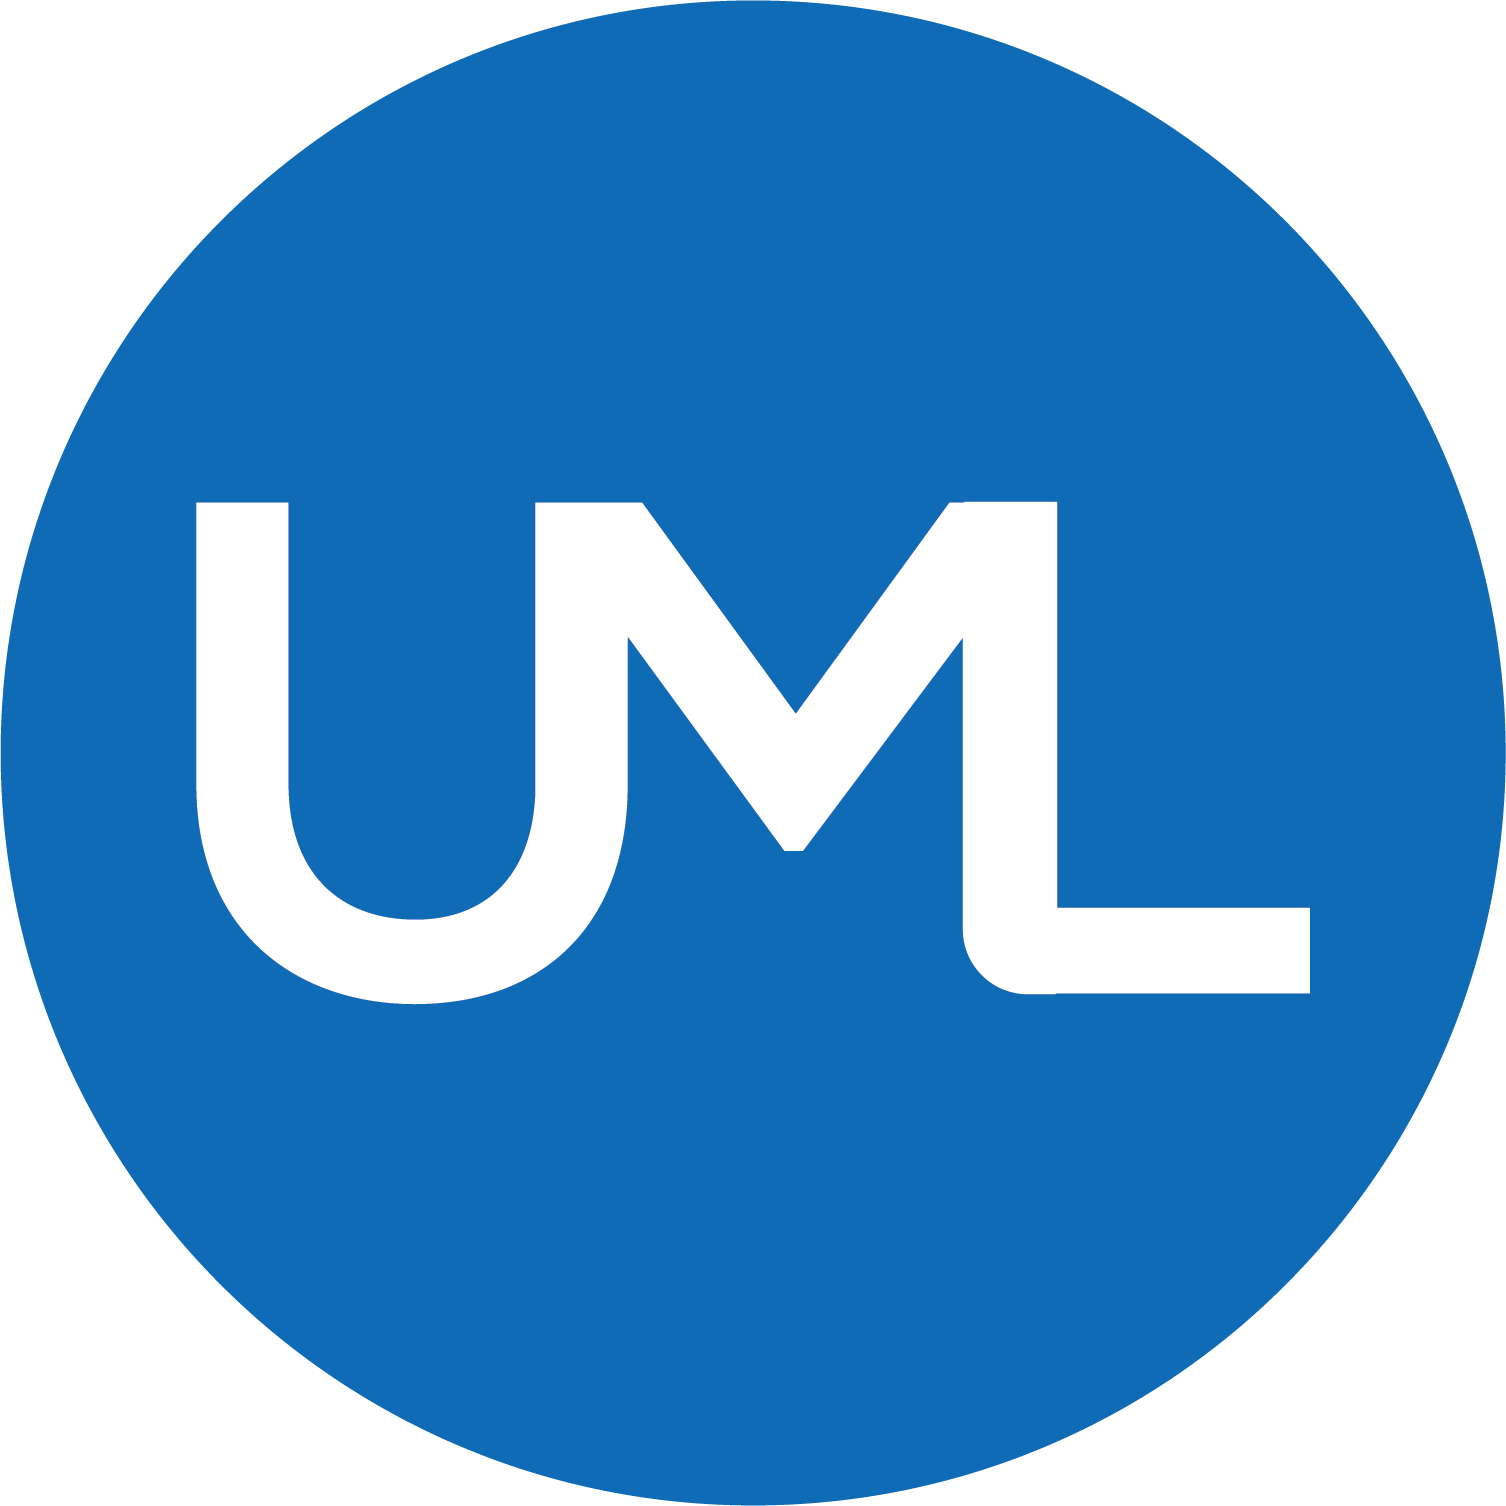 UML ultimate management limited invest in the future.